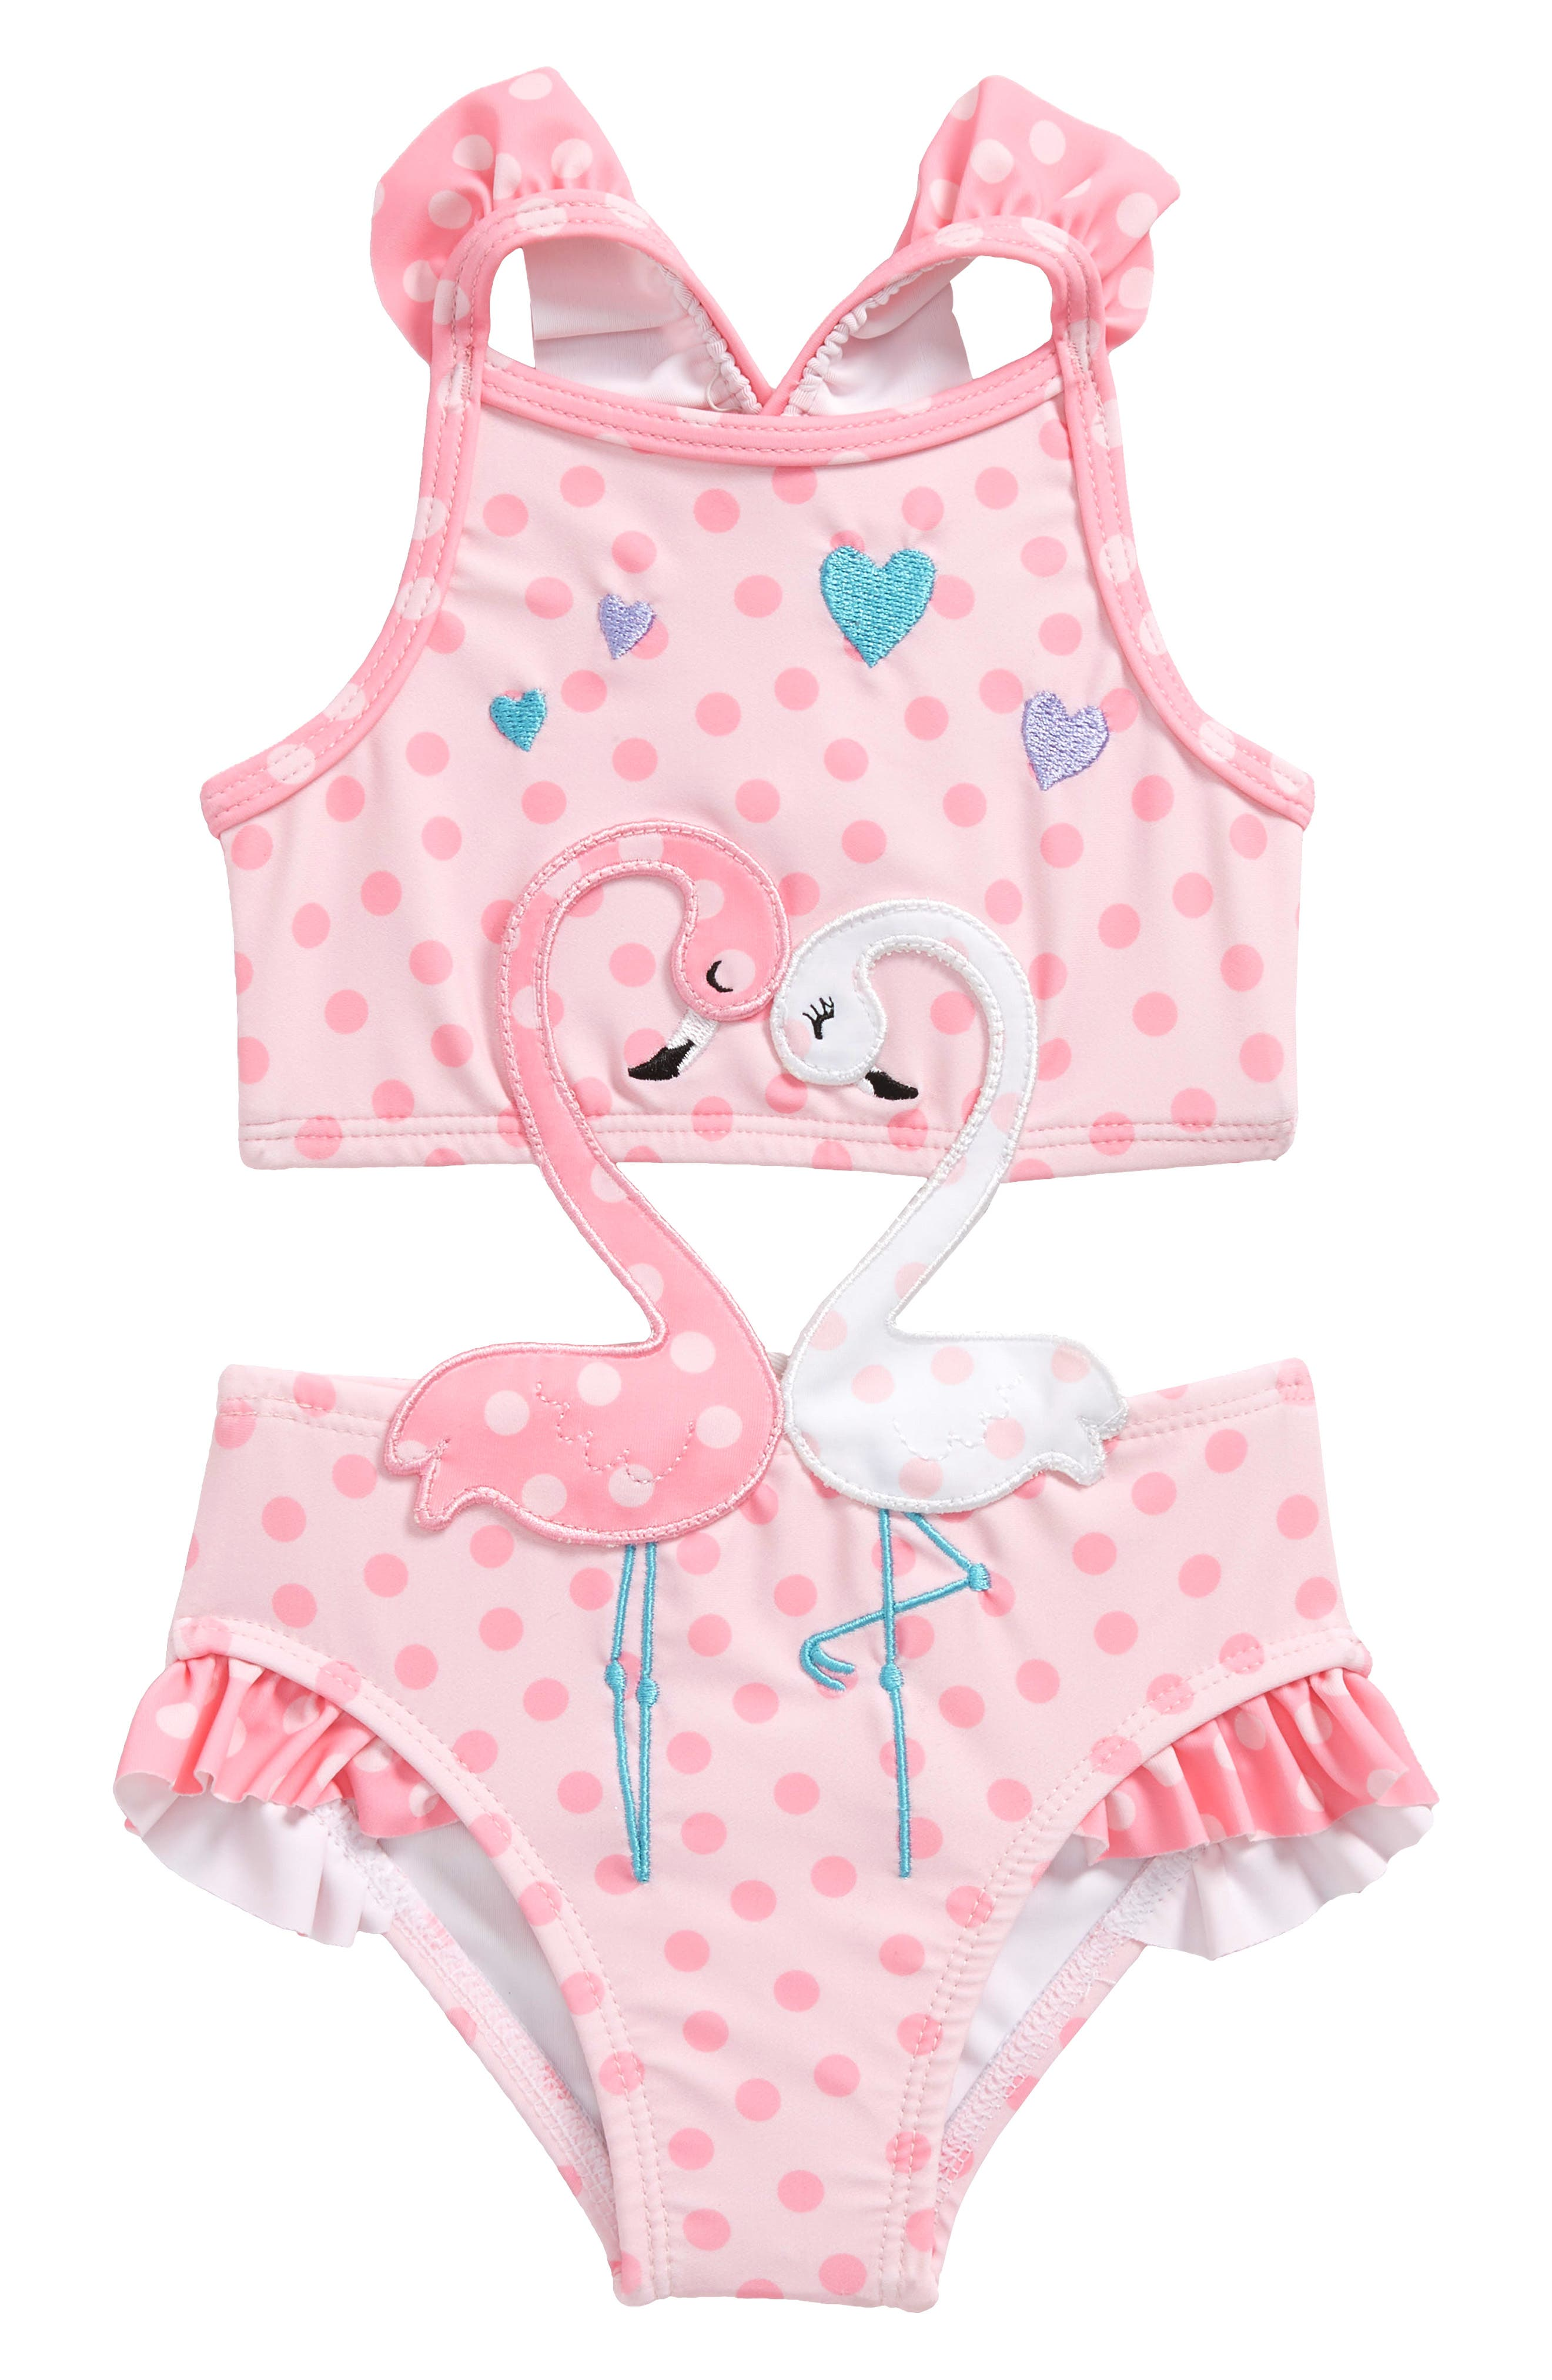 Flamingos in Love Cutout One-Piece Swimsuit,                             Main thumbnail 1, color,                             650